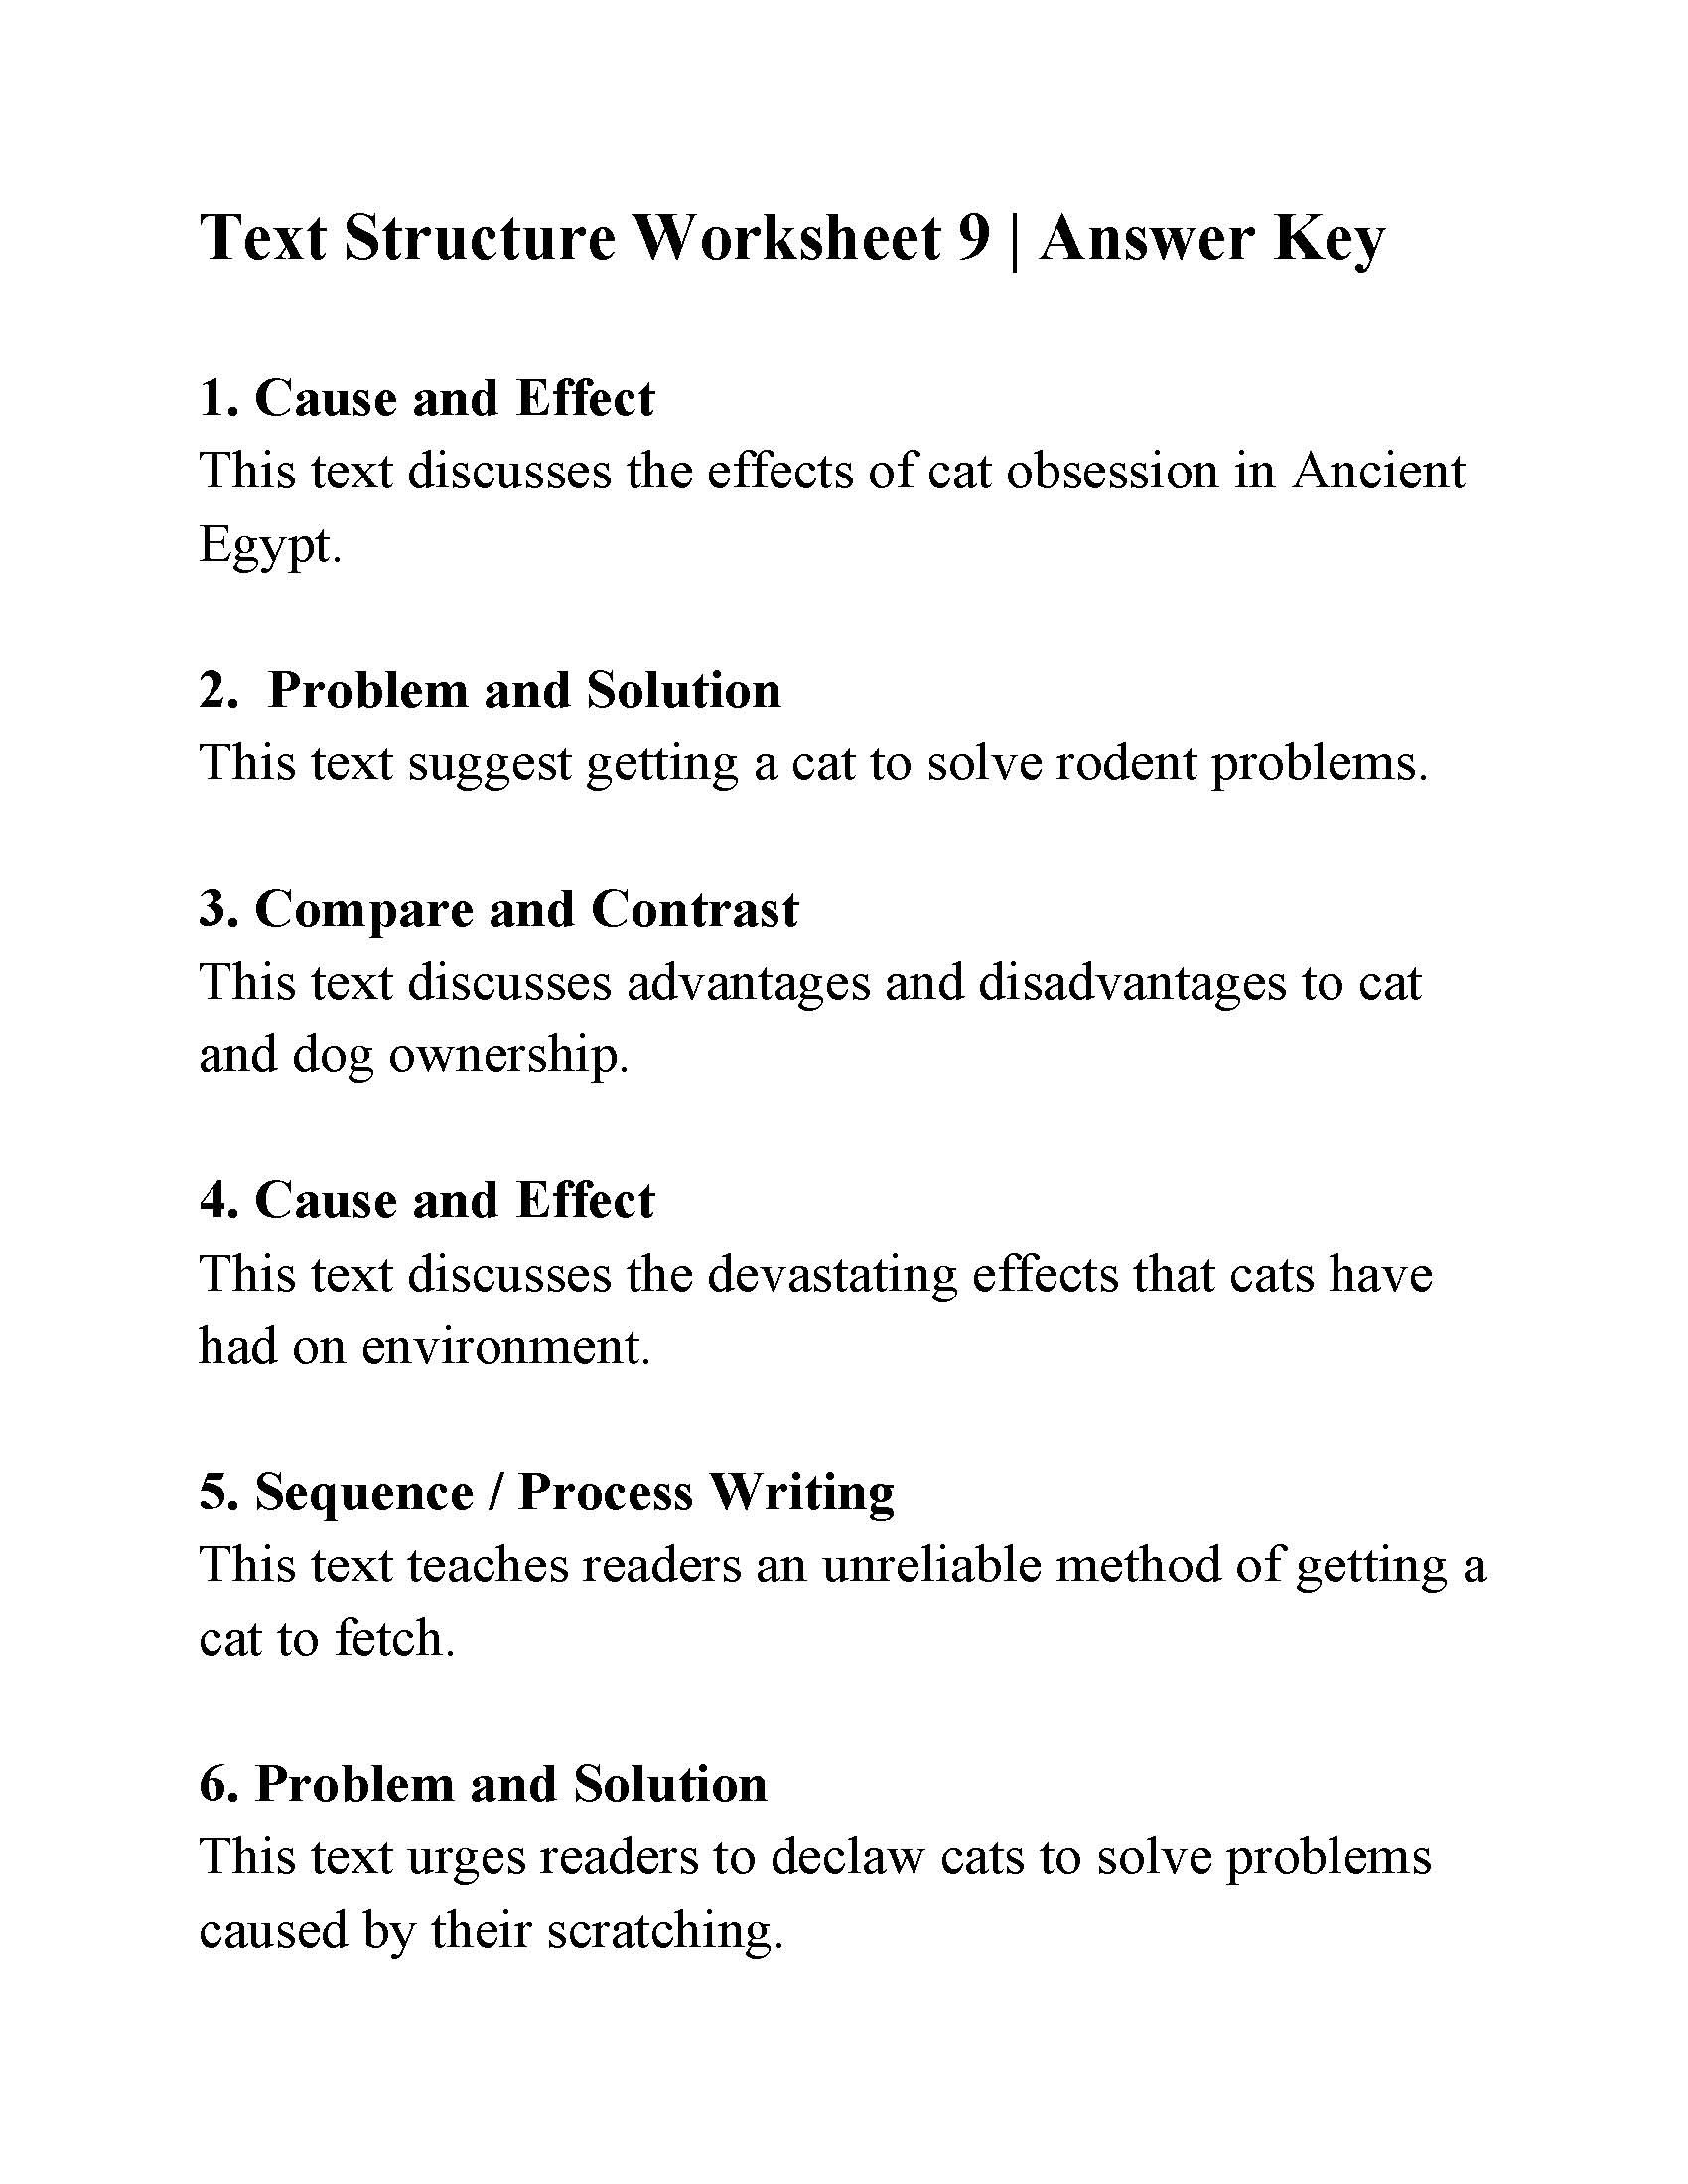 Text Structure 4th Grade Worksheets Text Structure Worksheet 9